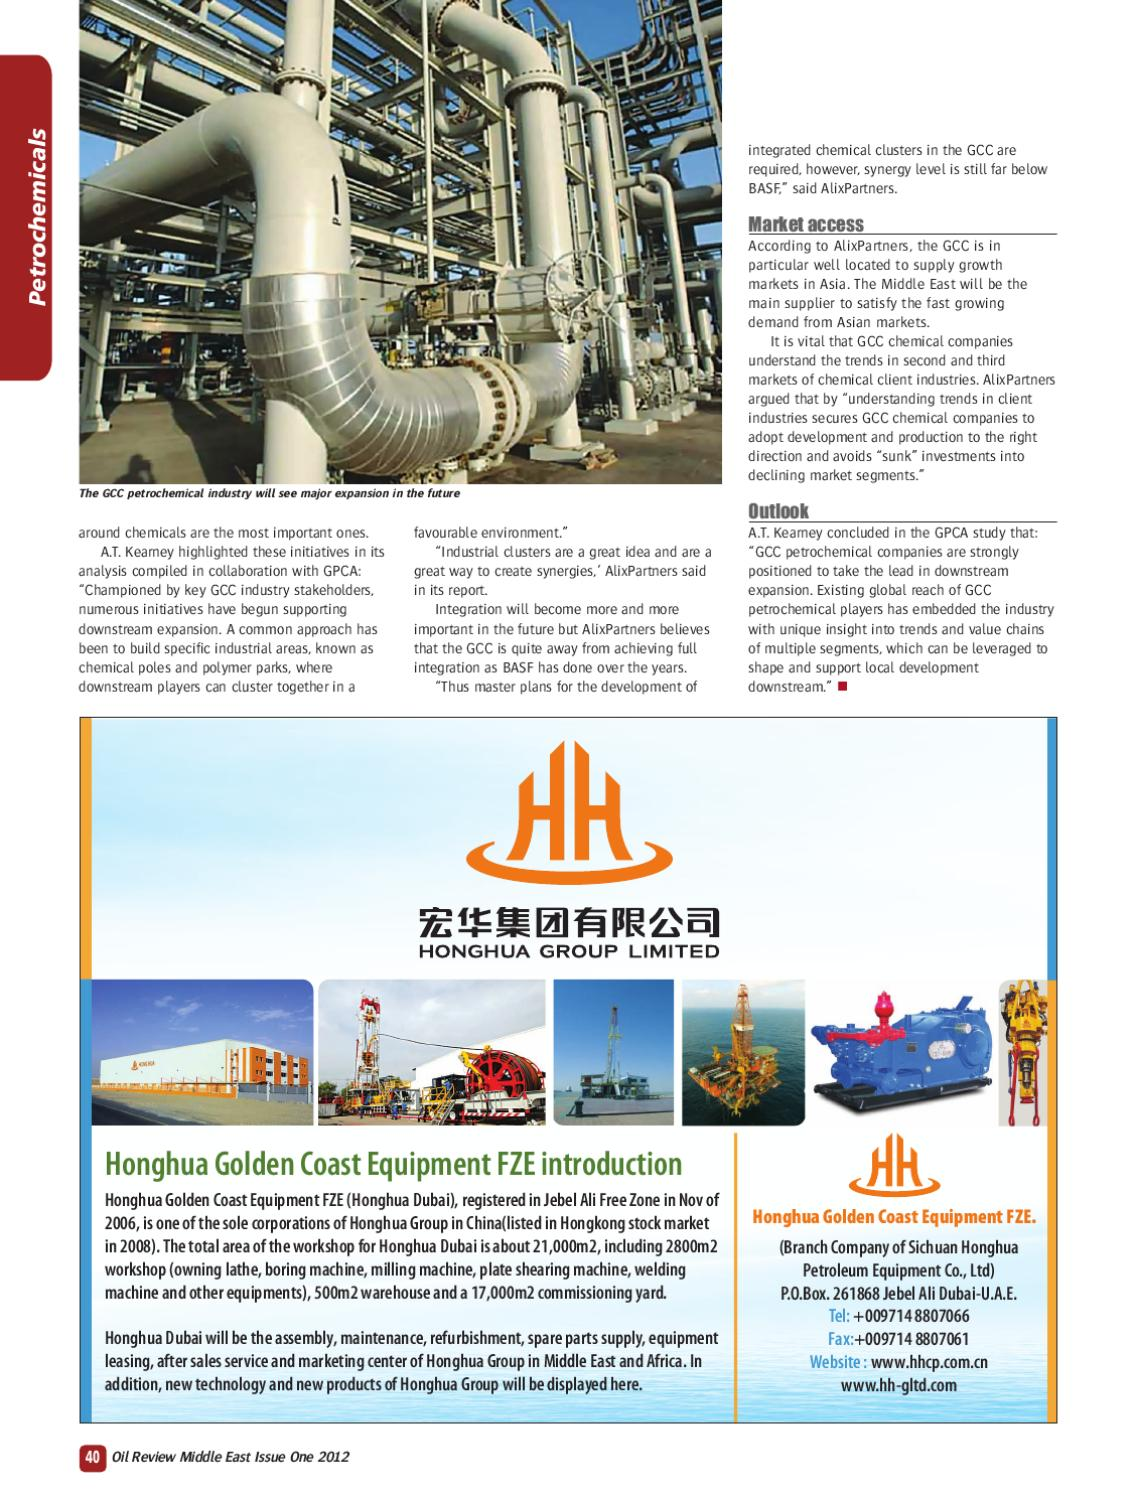 Oil Review Middle East issue 1 2012 by Alain Charles Publishing - issuu